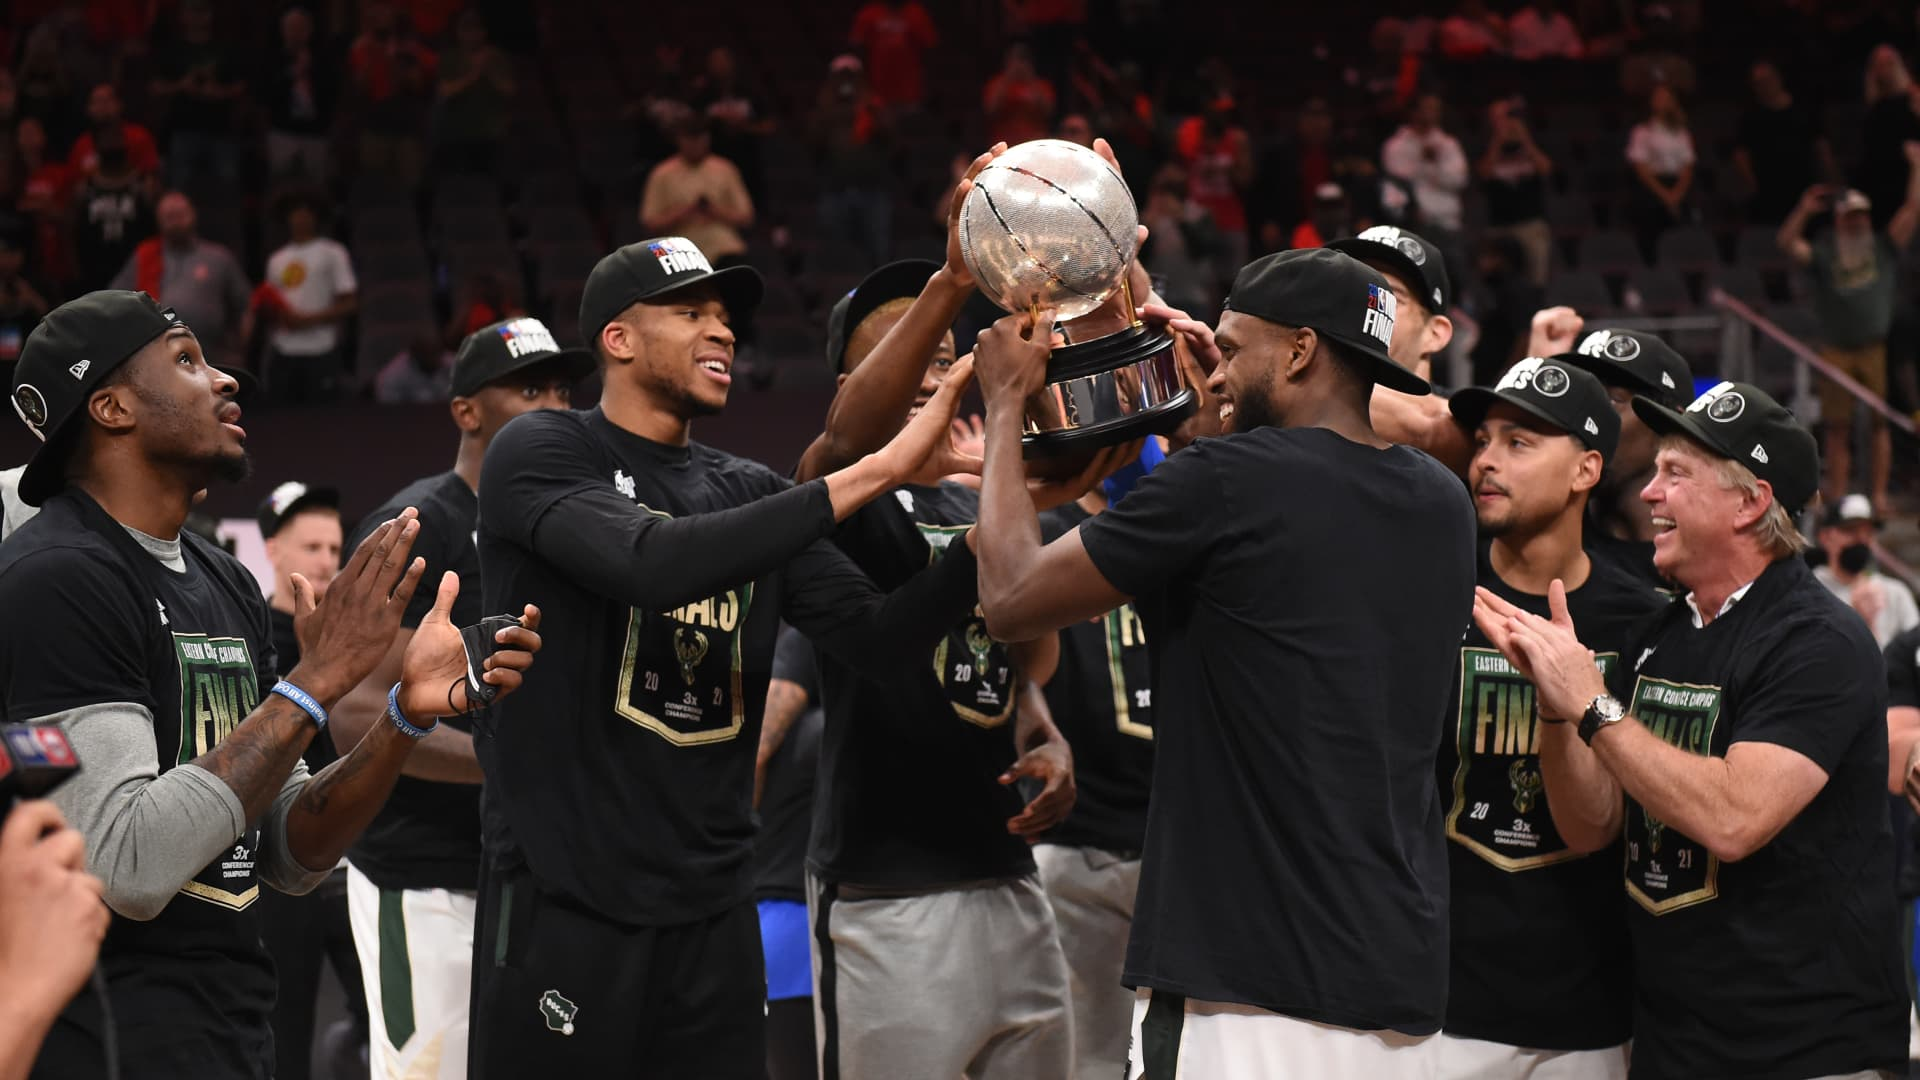 Khris Middleton #22 of the Milwaukee Bucks holds up the Eastern Conference Finals Trophy after the game against the Atlanta Hawks during Game 6 of the Eastern Conference Finals of the 2021 NBA Playoffs on July 3, 2021 at State Farm Arena in Atlanta, Georgia.